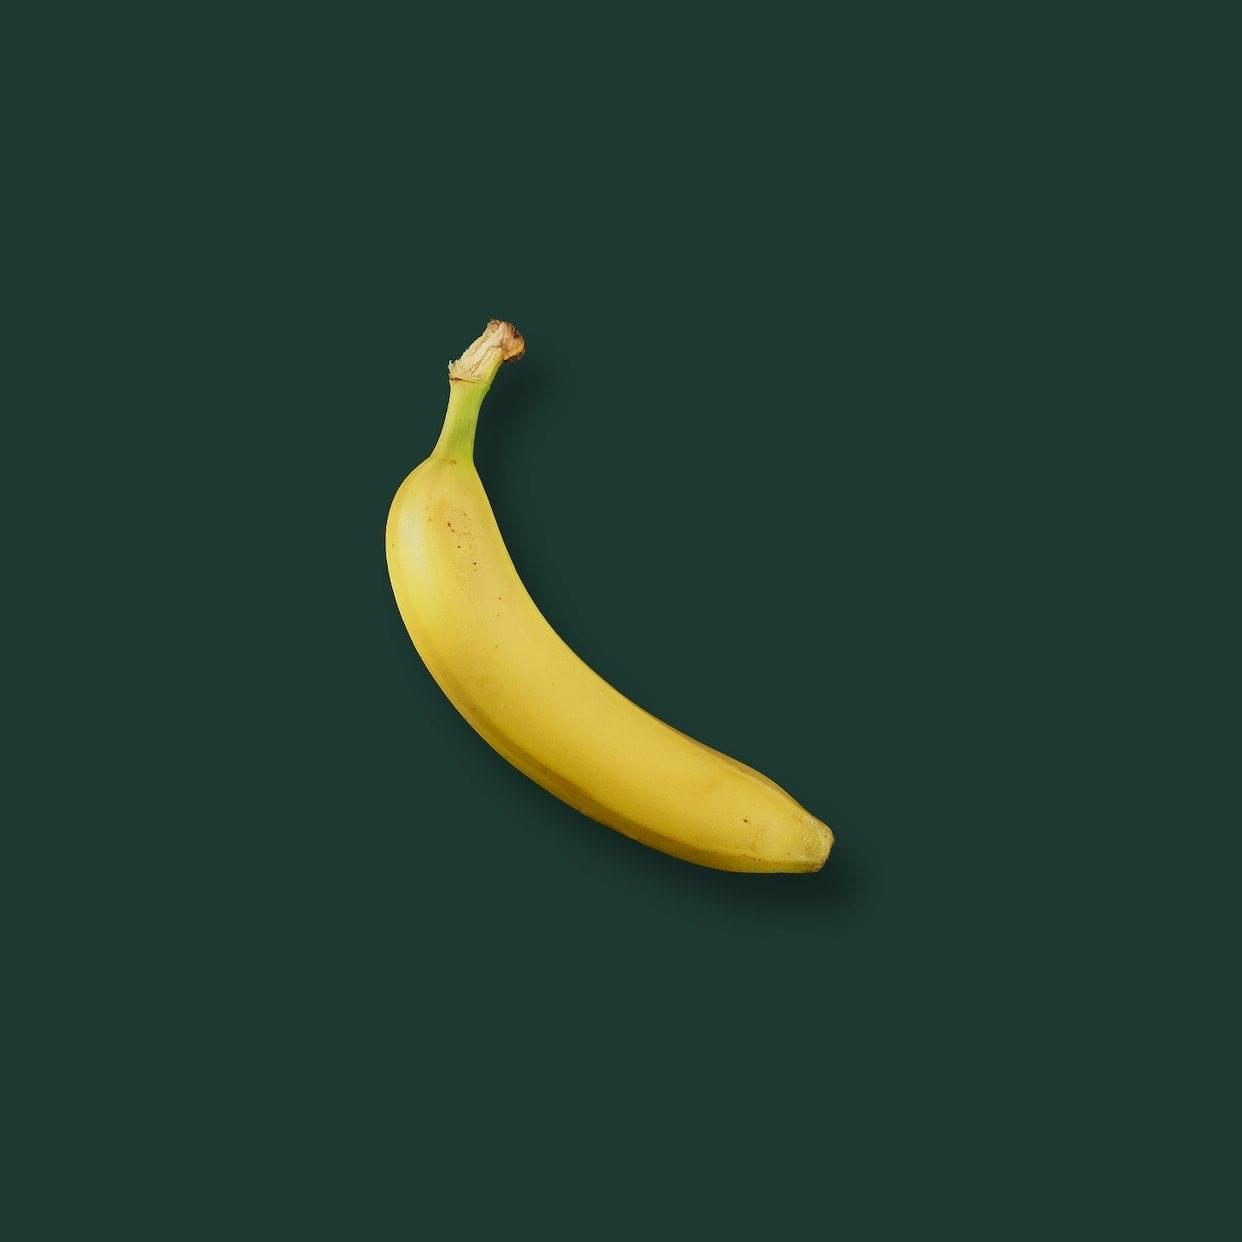 Starbucks Banana Nutrition Facts